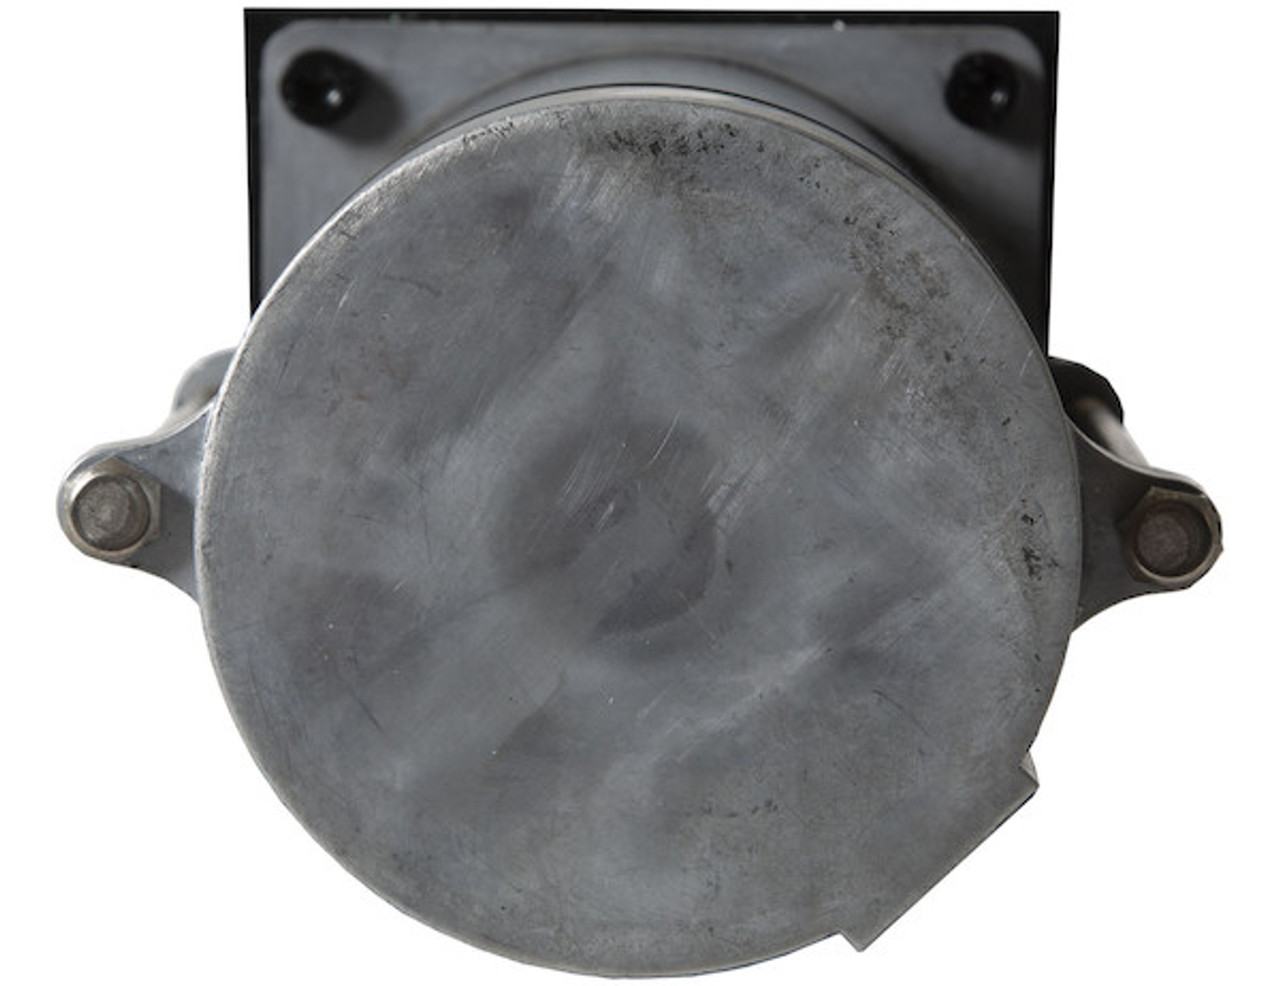 3015377 BUYERS SALTDOGG REPLACEMENT .5 HP 12 VDC DUAL SHAFT GEAR MOTOR FOR TGS03 AND TGS07 4